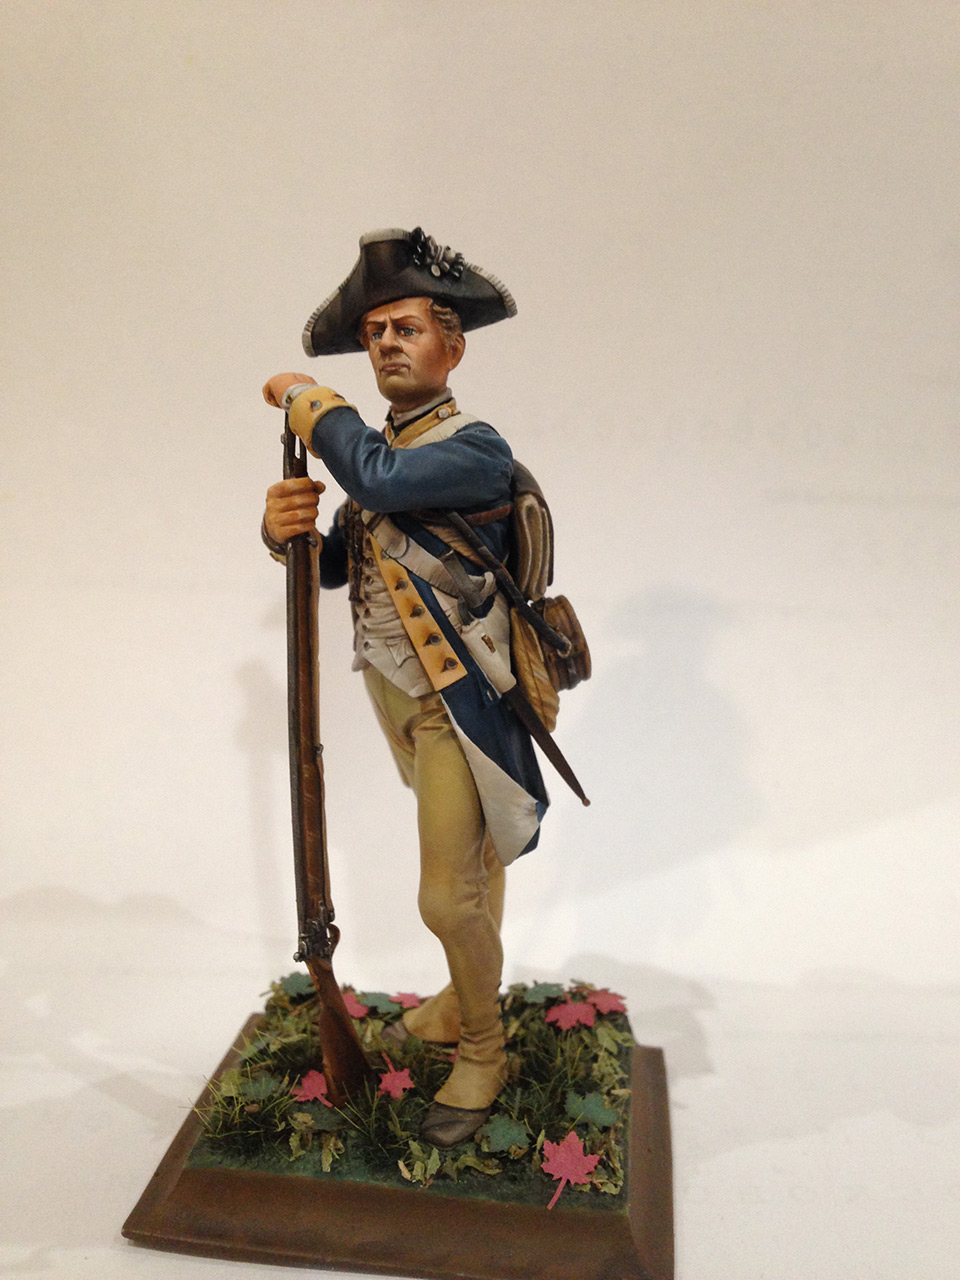 Figures: Private, 1st New York regt. of Continental Army, photo #1